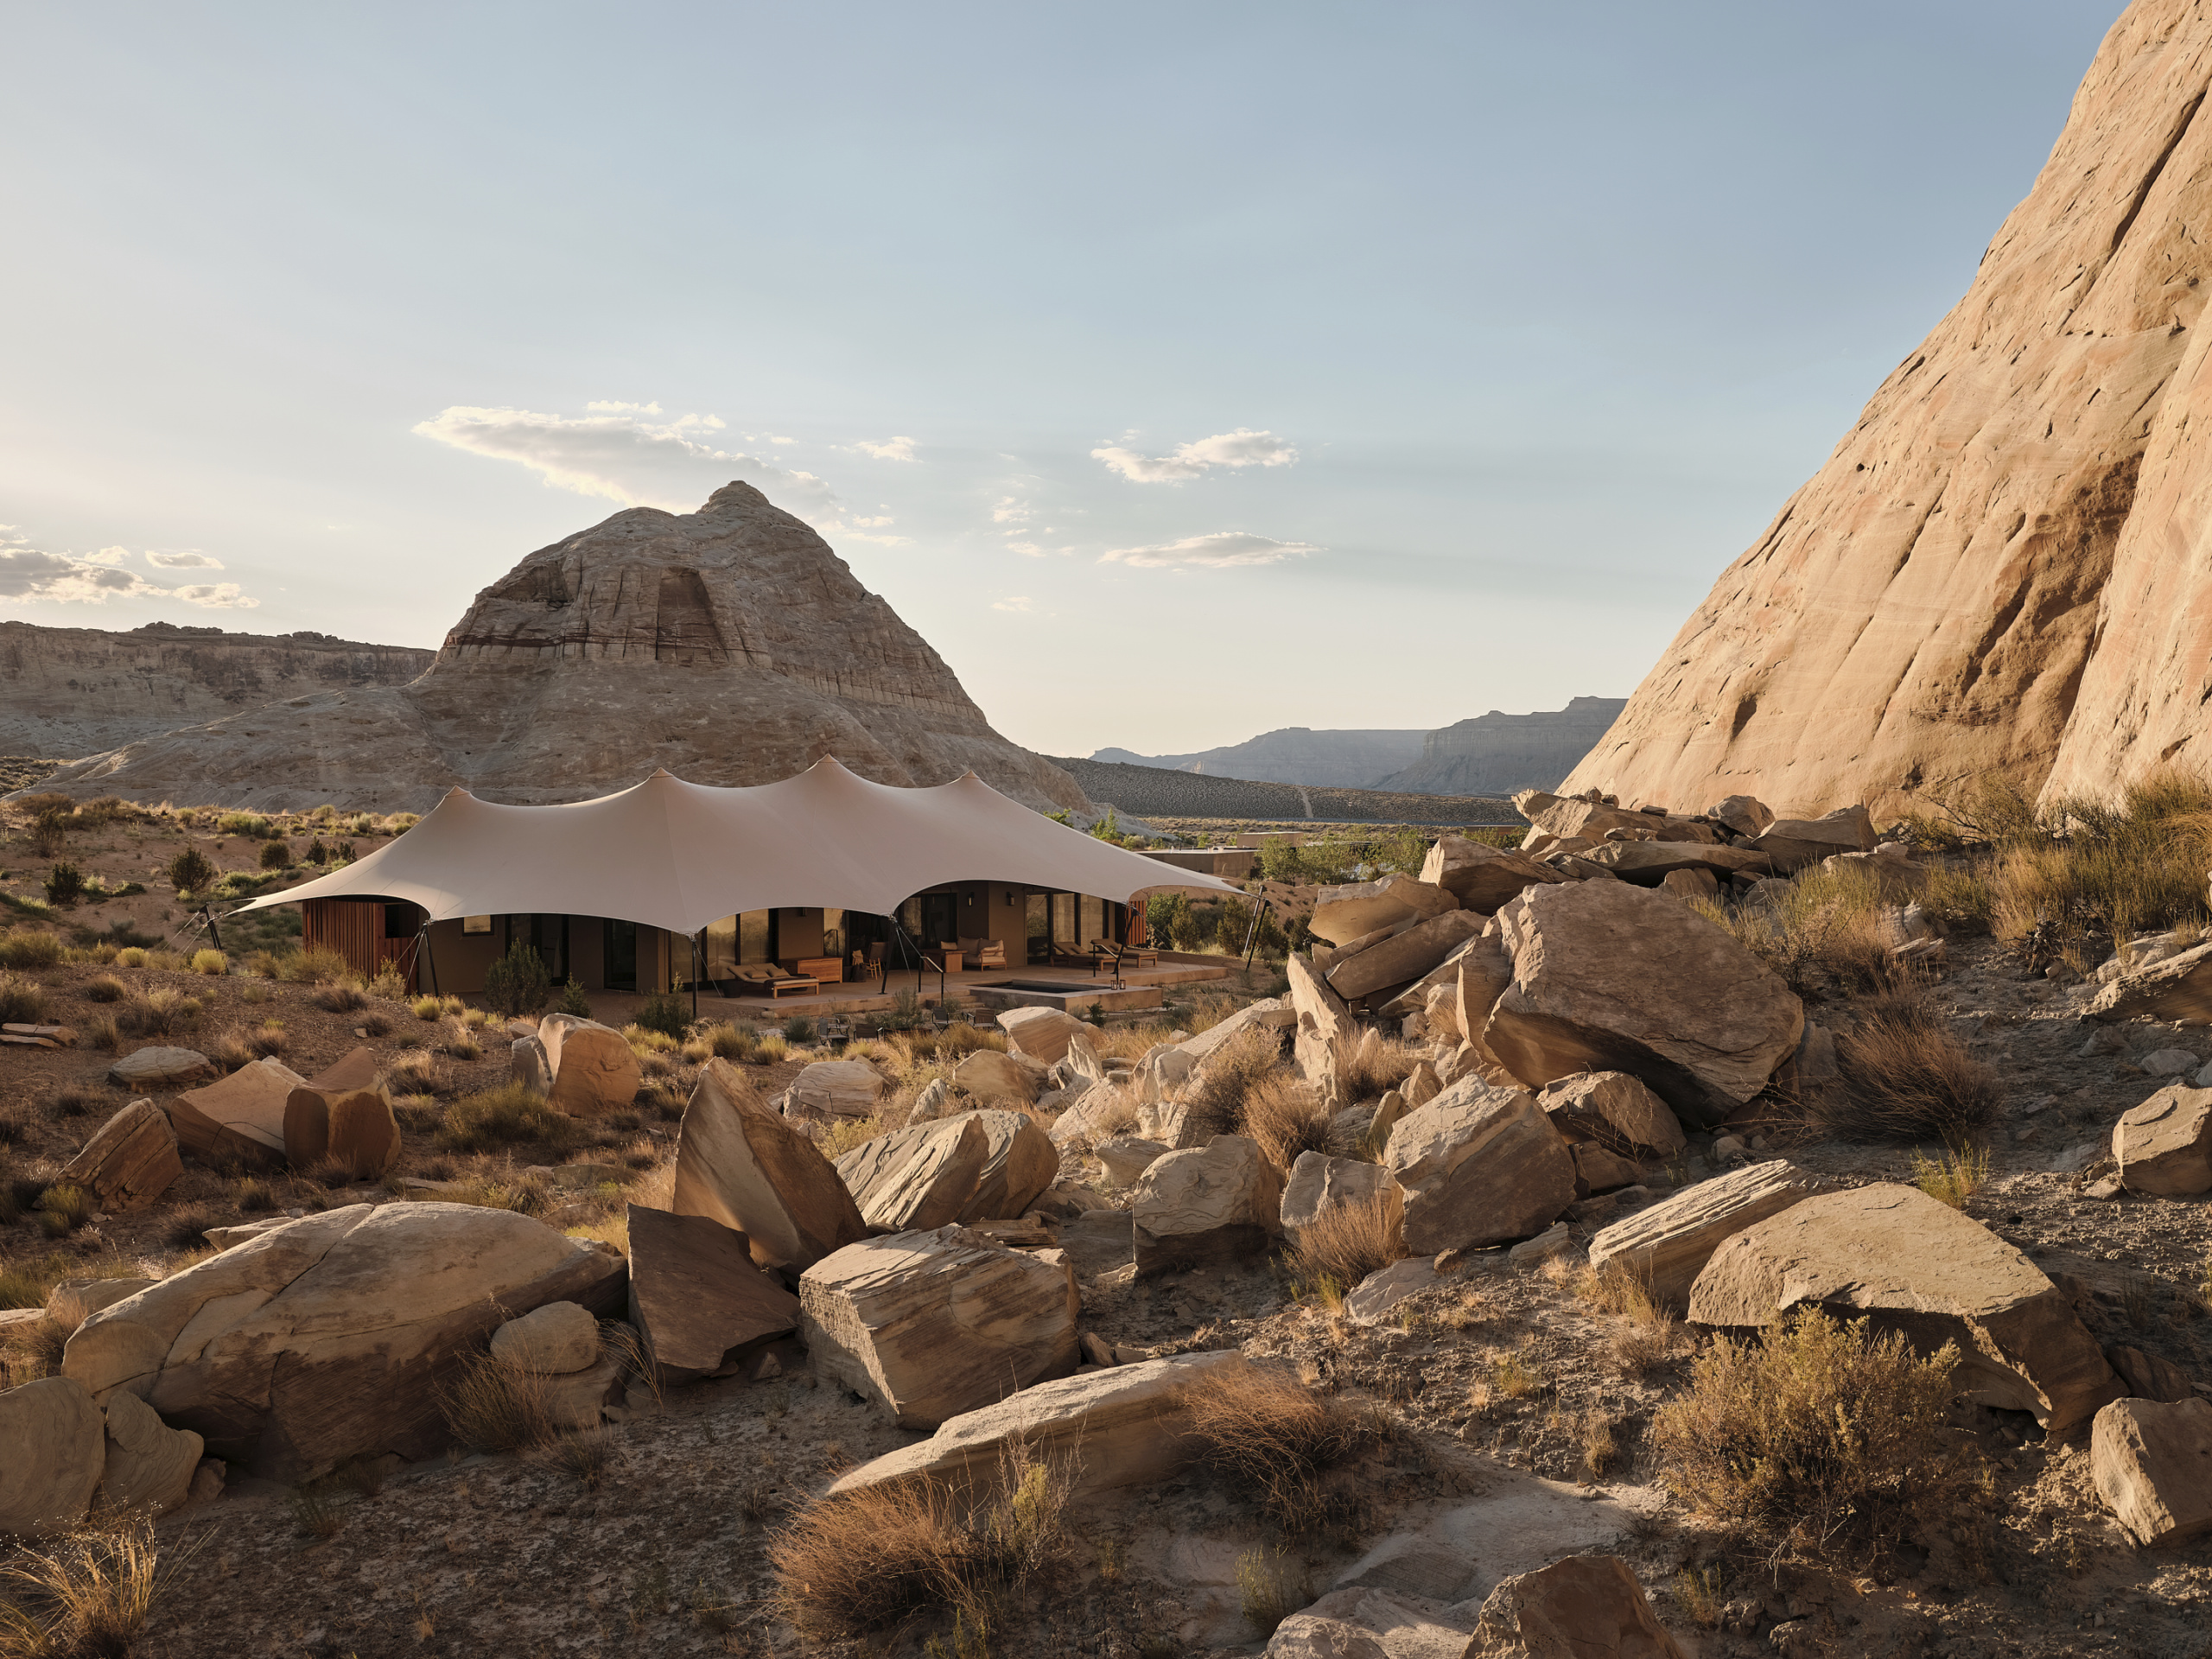 In the June edition of the Founder Series, Homi Vazifdar shares how he co-founded Utah's Amangiri resort.